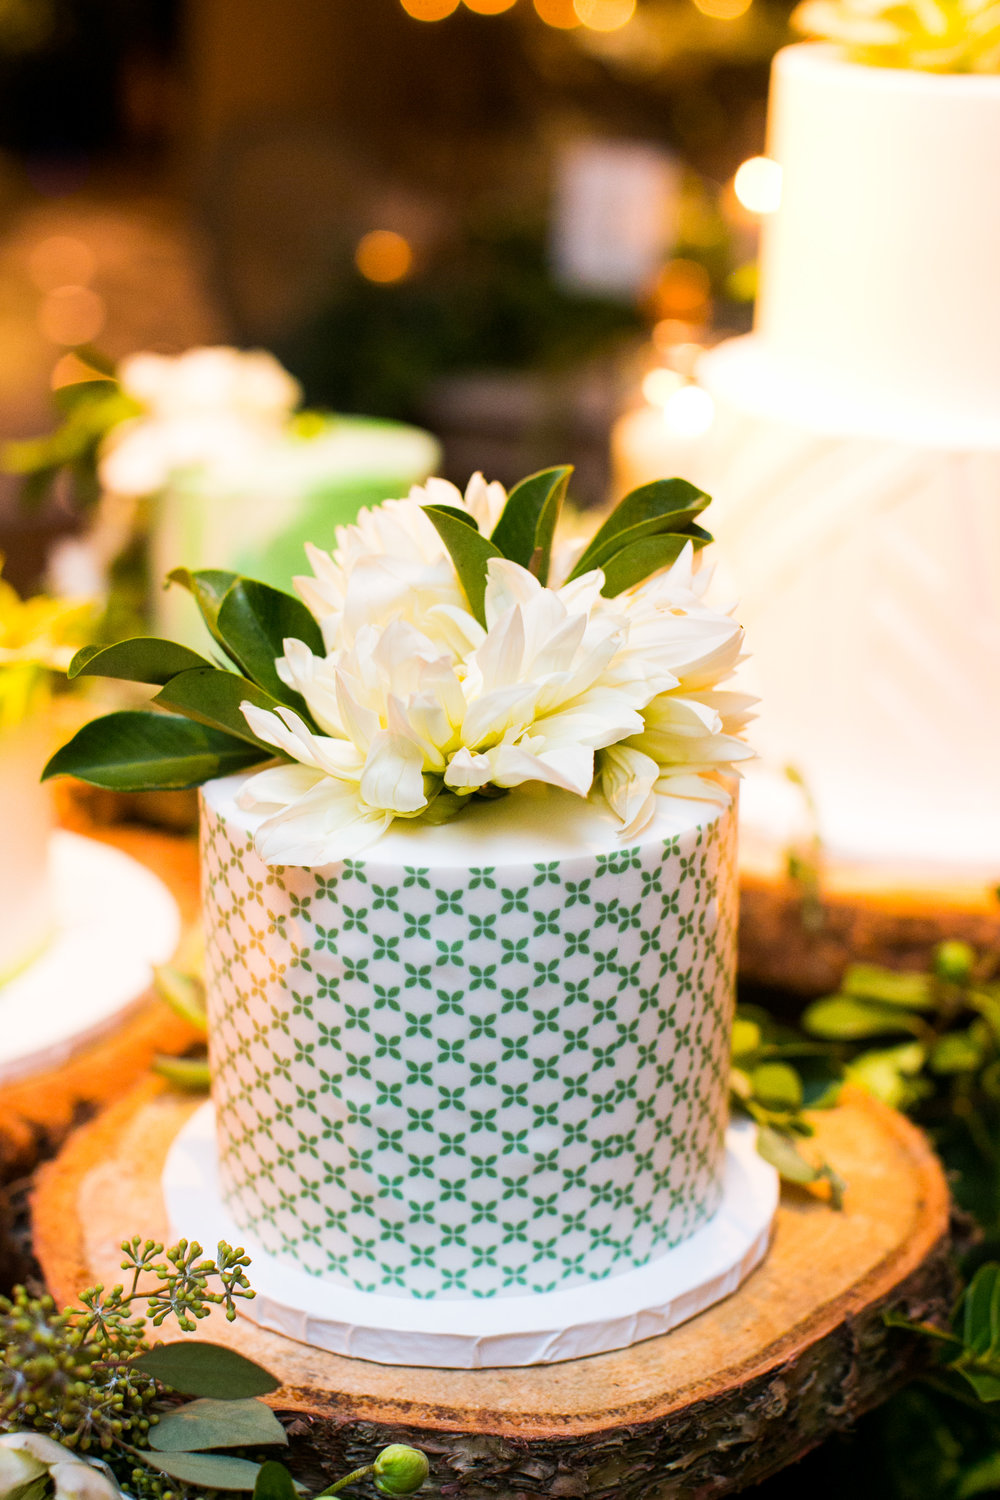 www.santabarbarawedding.com | Four Seasons Santa Barbara | Levine Fox Events | Callaway Gable Photo | Wedding Cake